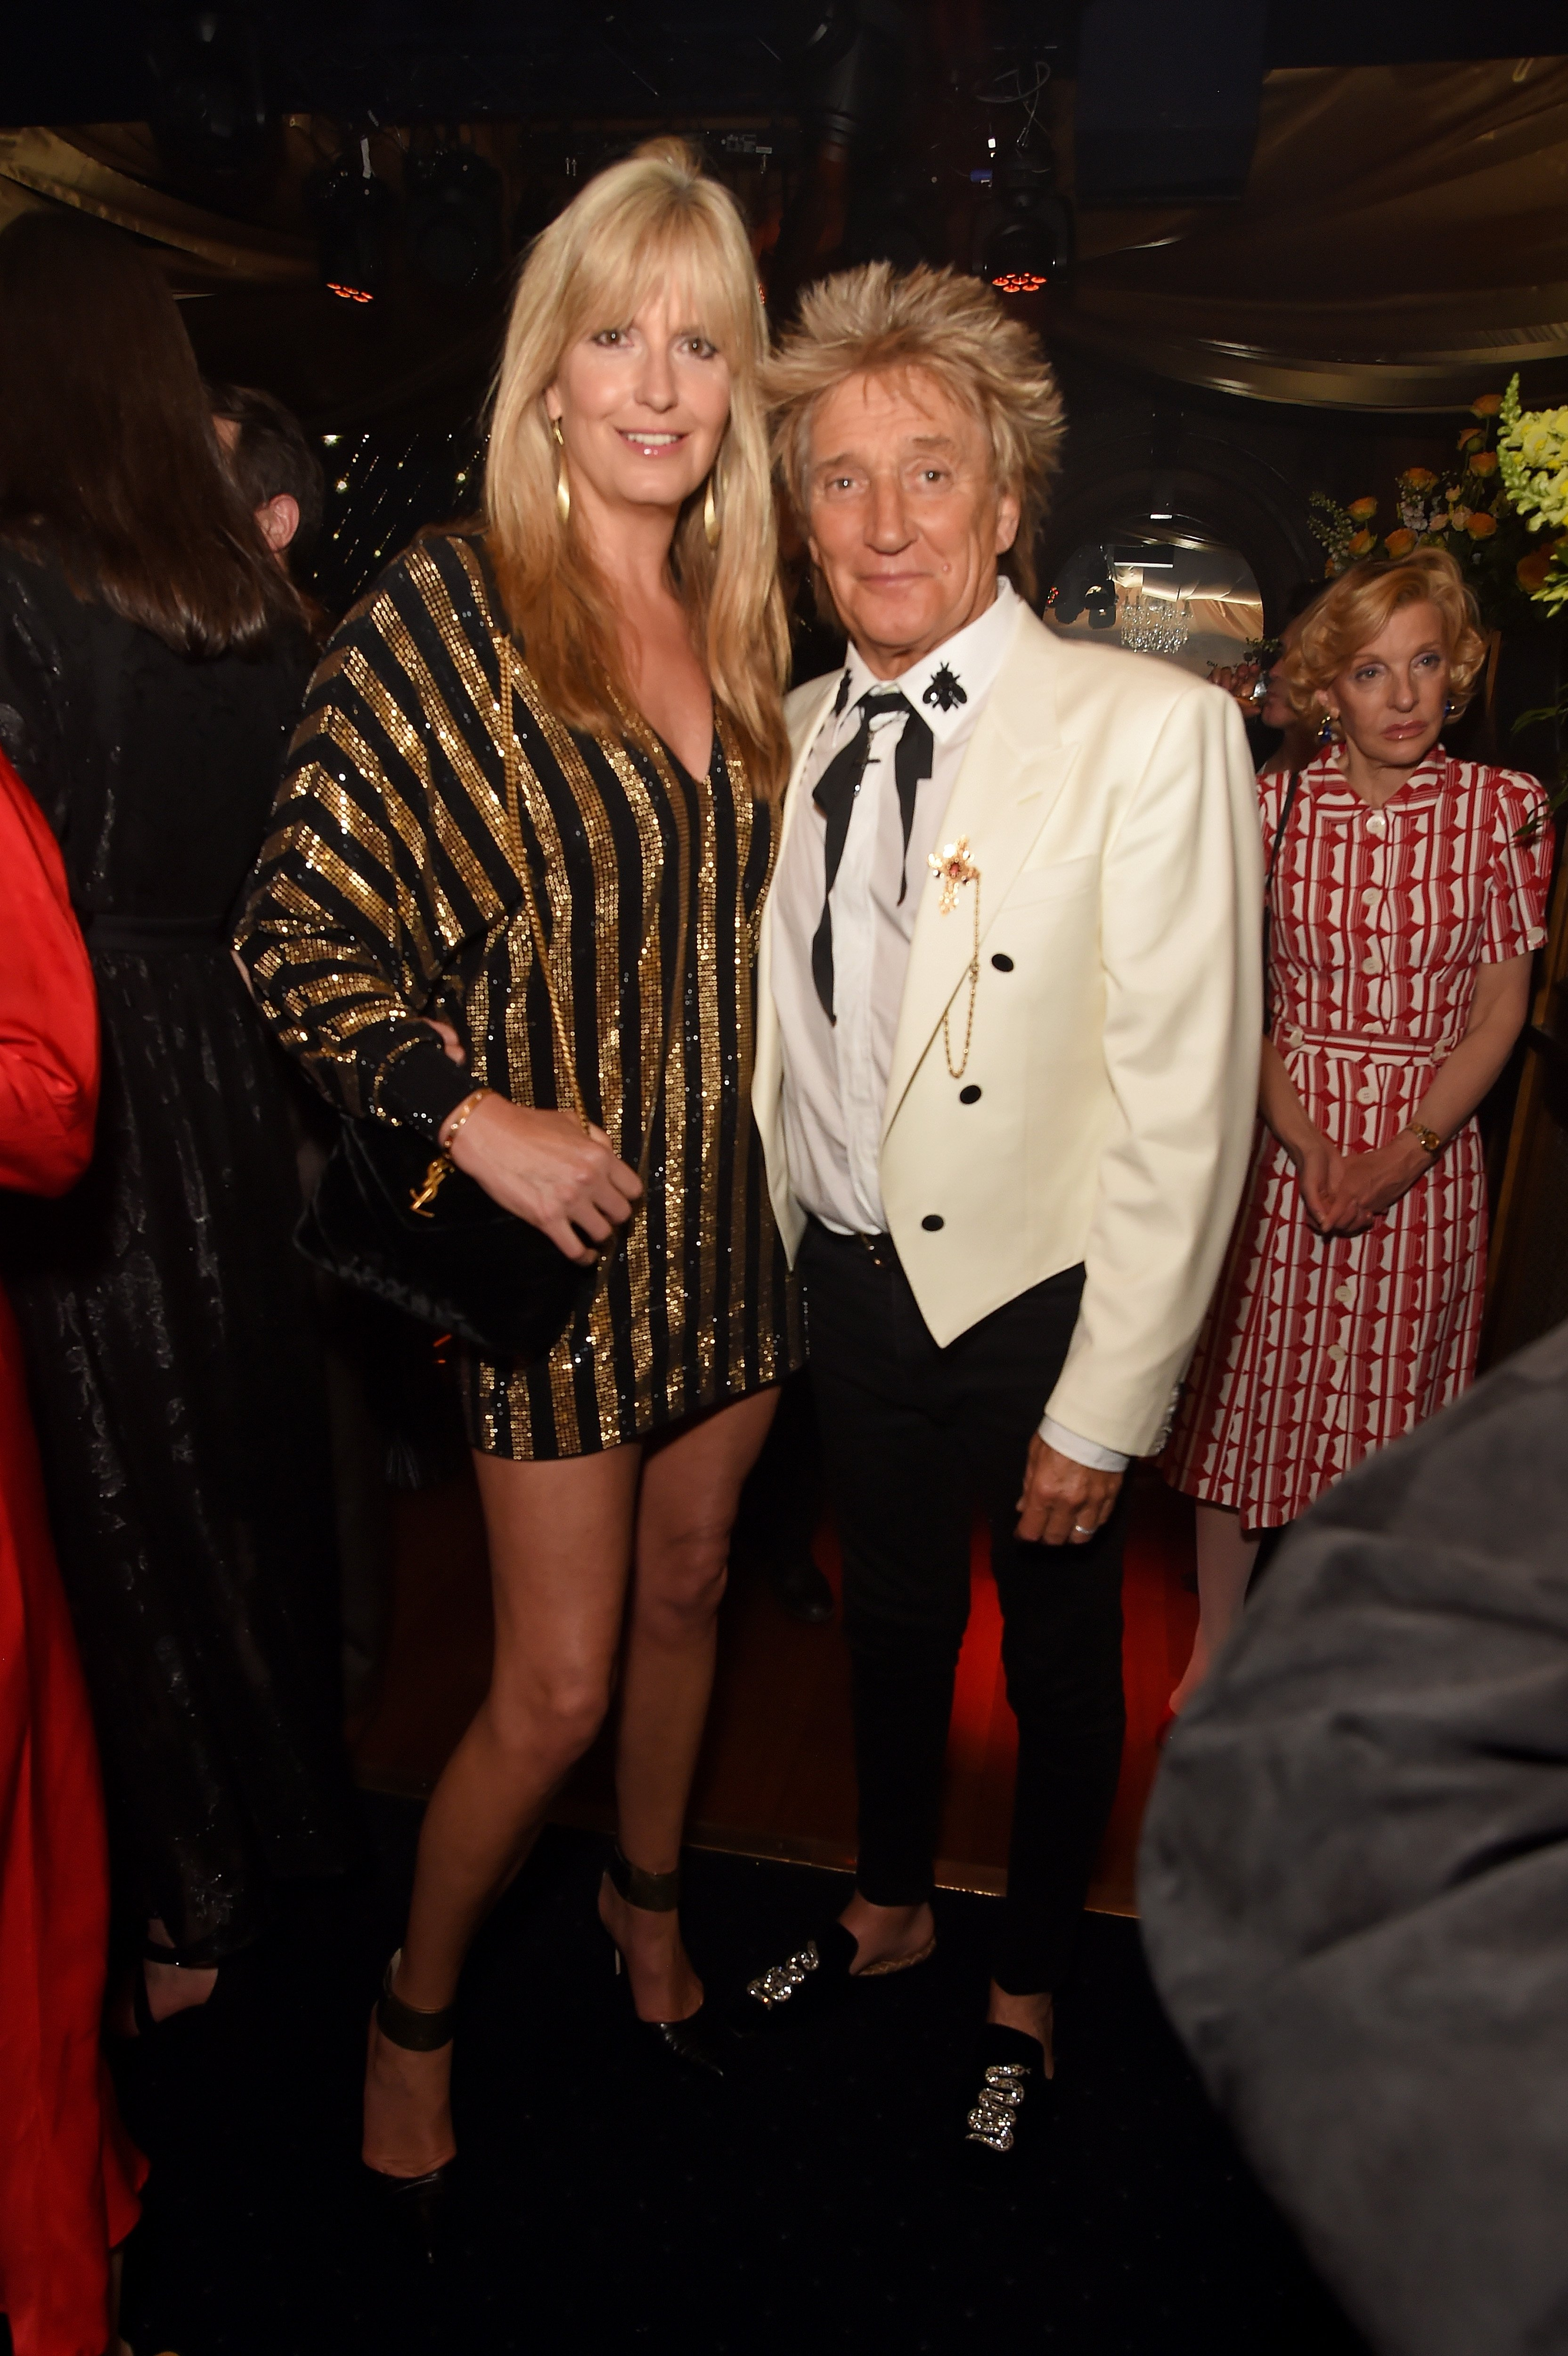 Penny Lancaster and Sir Rod Stewart at the 50th Anniversary of Tramp on May 23, 2019 in London, England | Photo: Getty Images